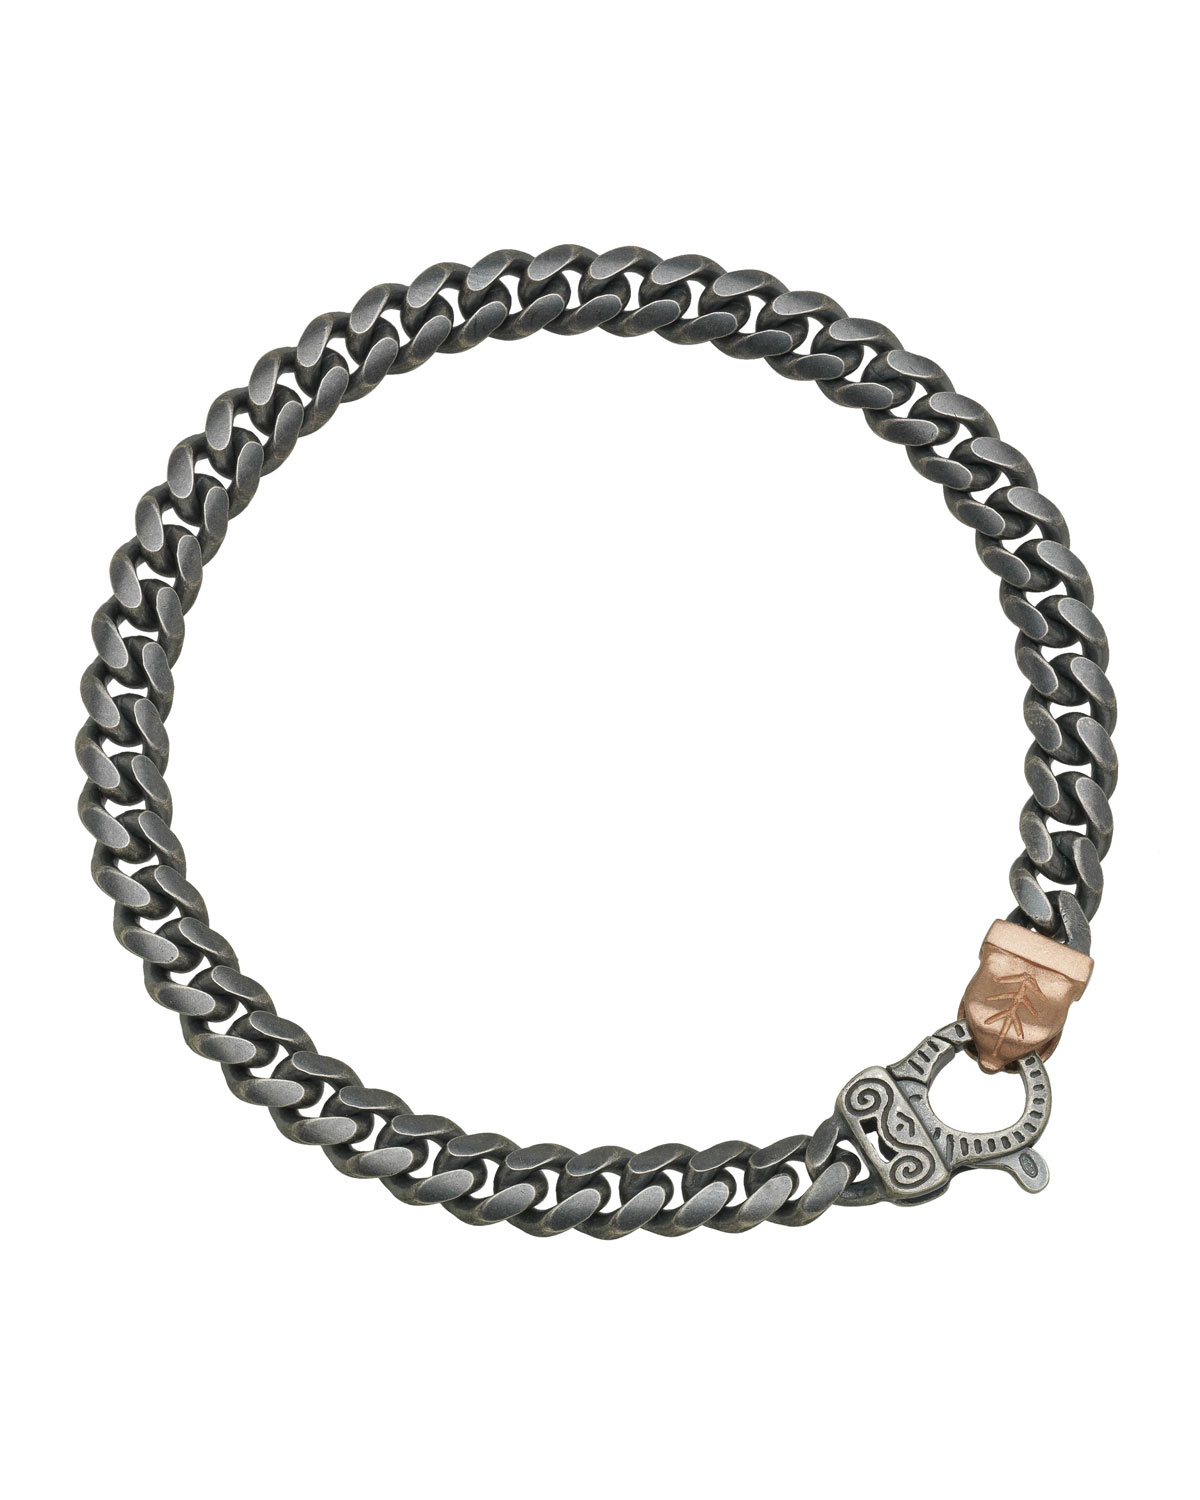 MARCO DAL MASO MEN'S FLAMING TONGUE OXIDIZED SILVER CHAIN BRACELET W/ 18K PINK GOLD-PLATE CLASP